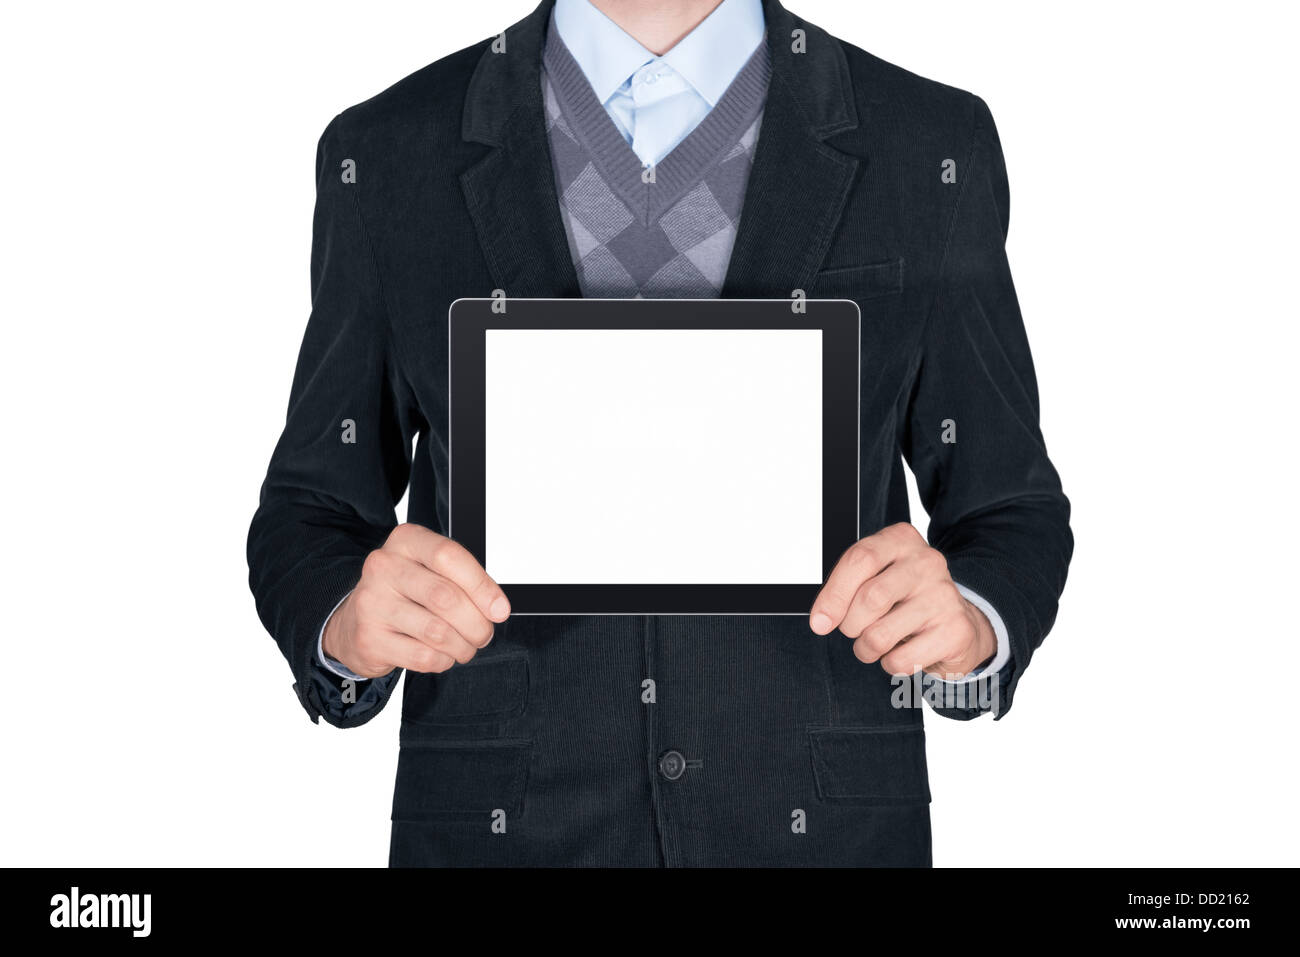 Young man in black suit showing modern digital tablet with blank screen. Isolated on white background Stock Photo